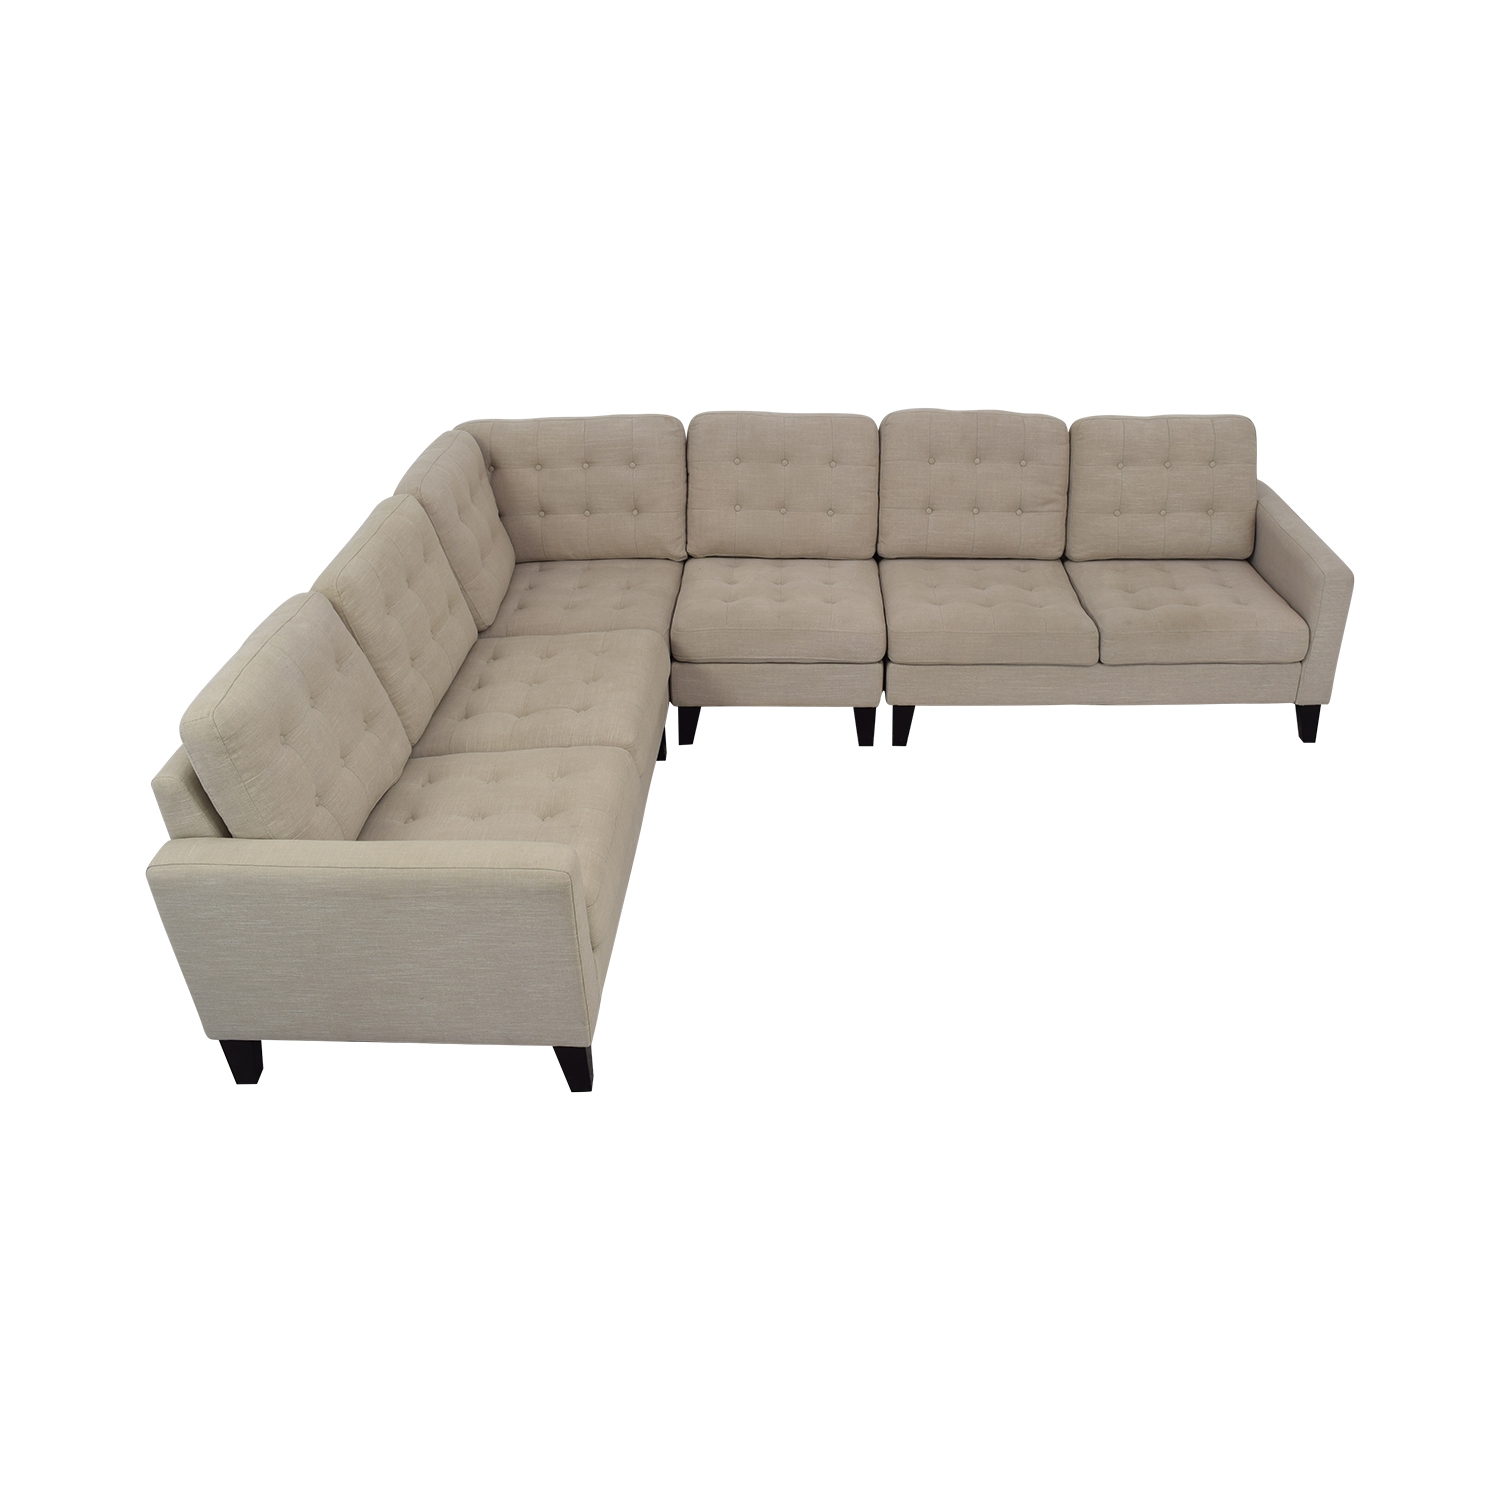 Pier 1 Nyle L-Shaped Sectional Sofa / Sectionals